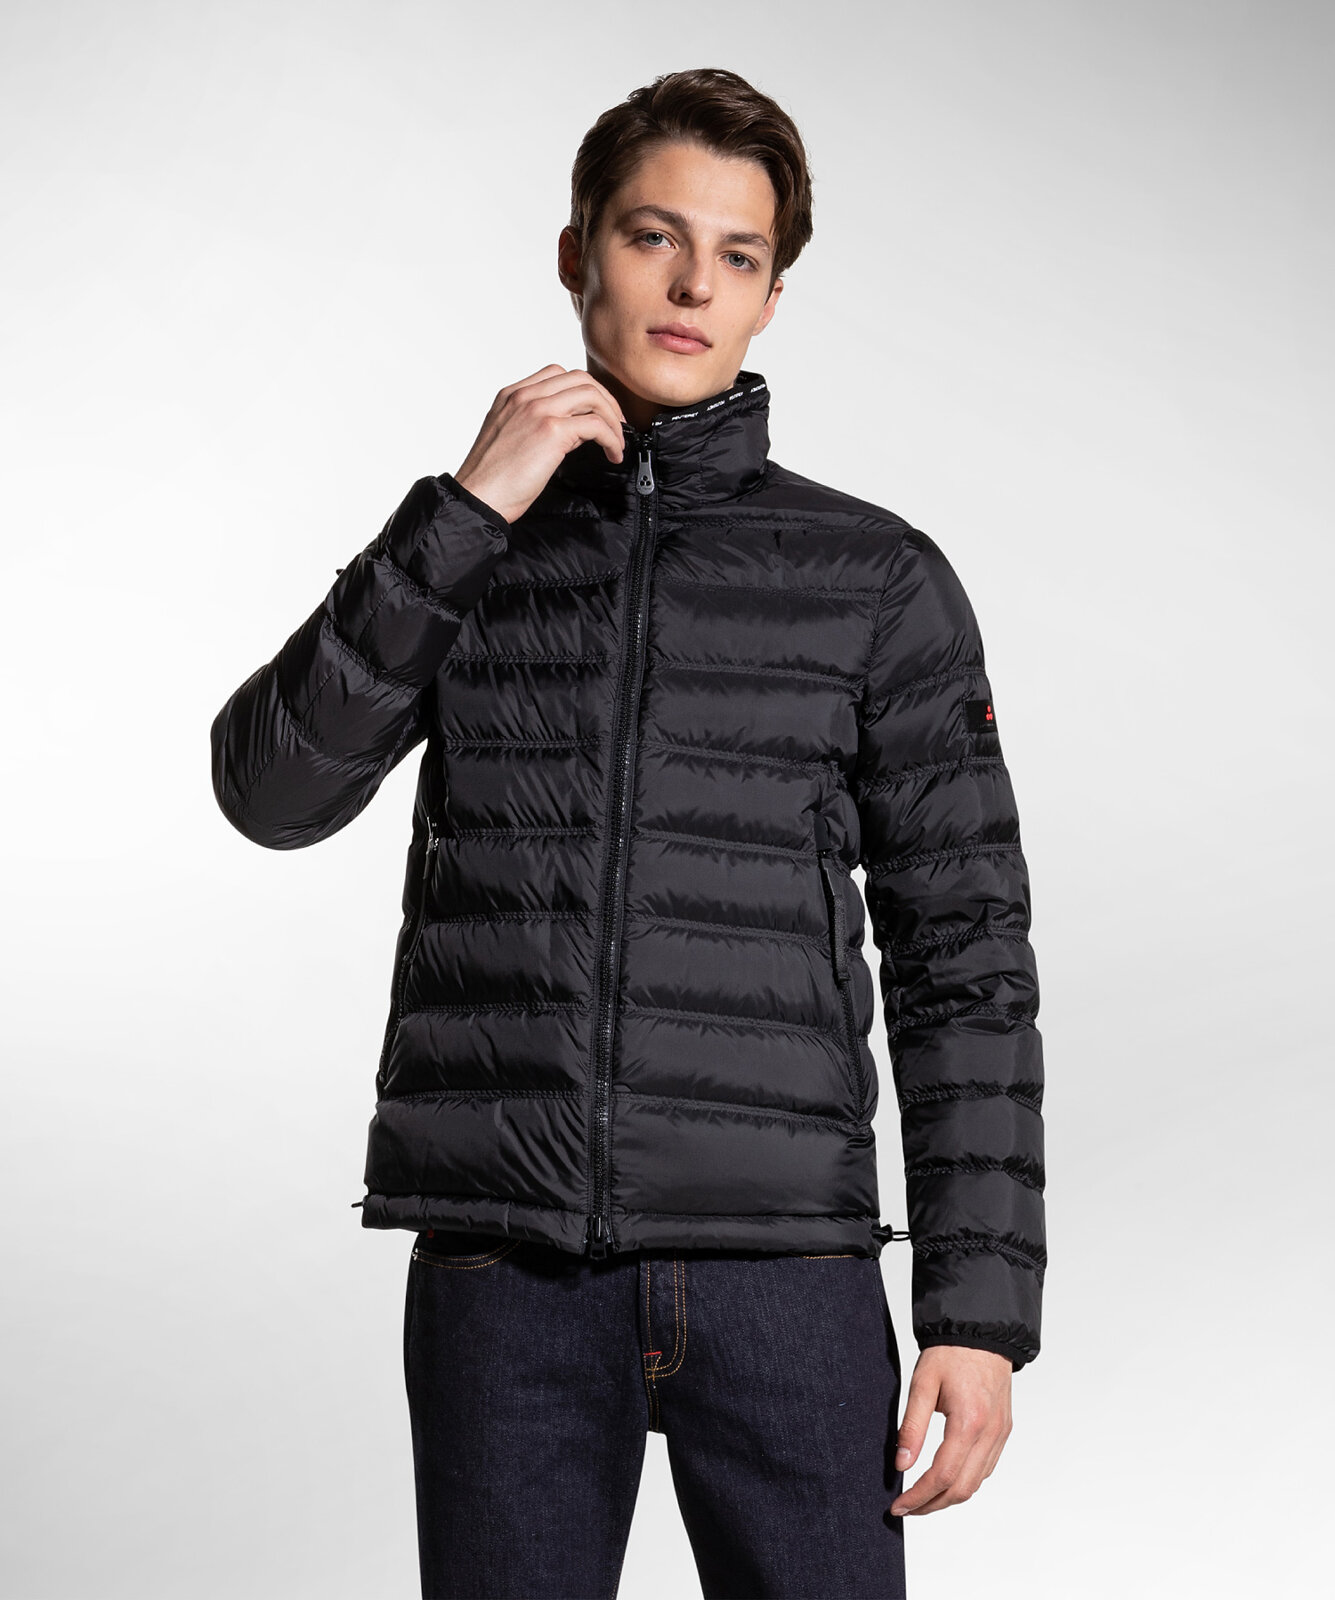 Superlight Nylon Down Jacket - Peuterey